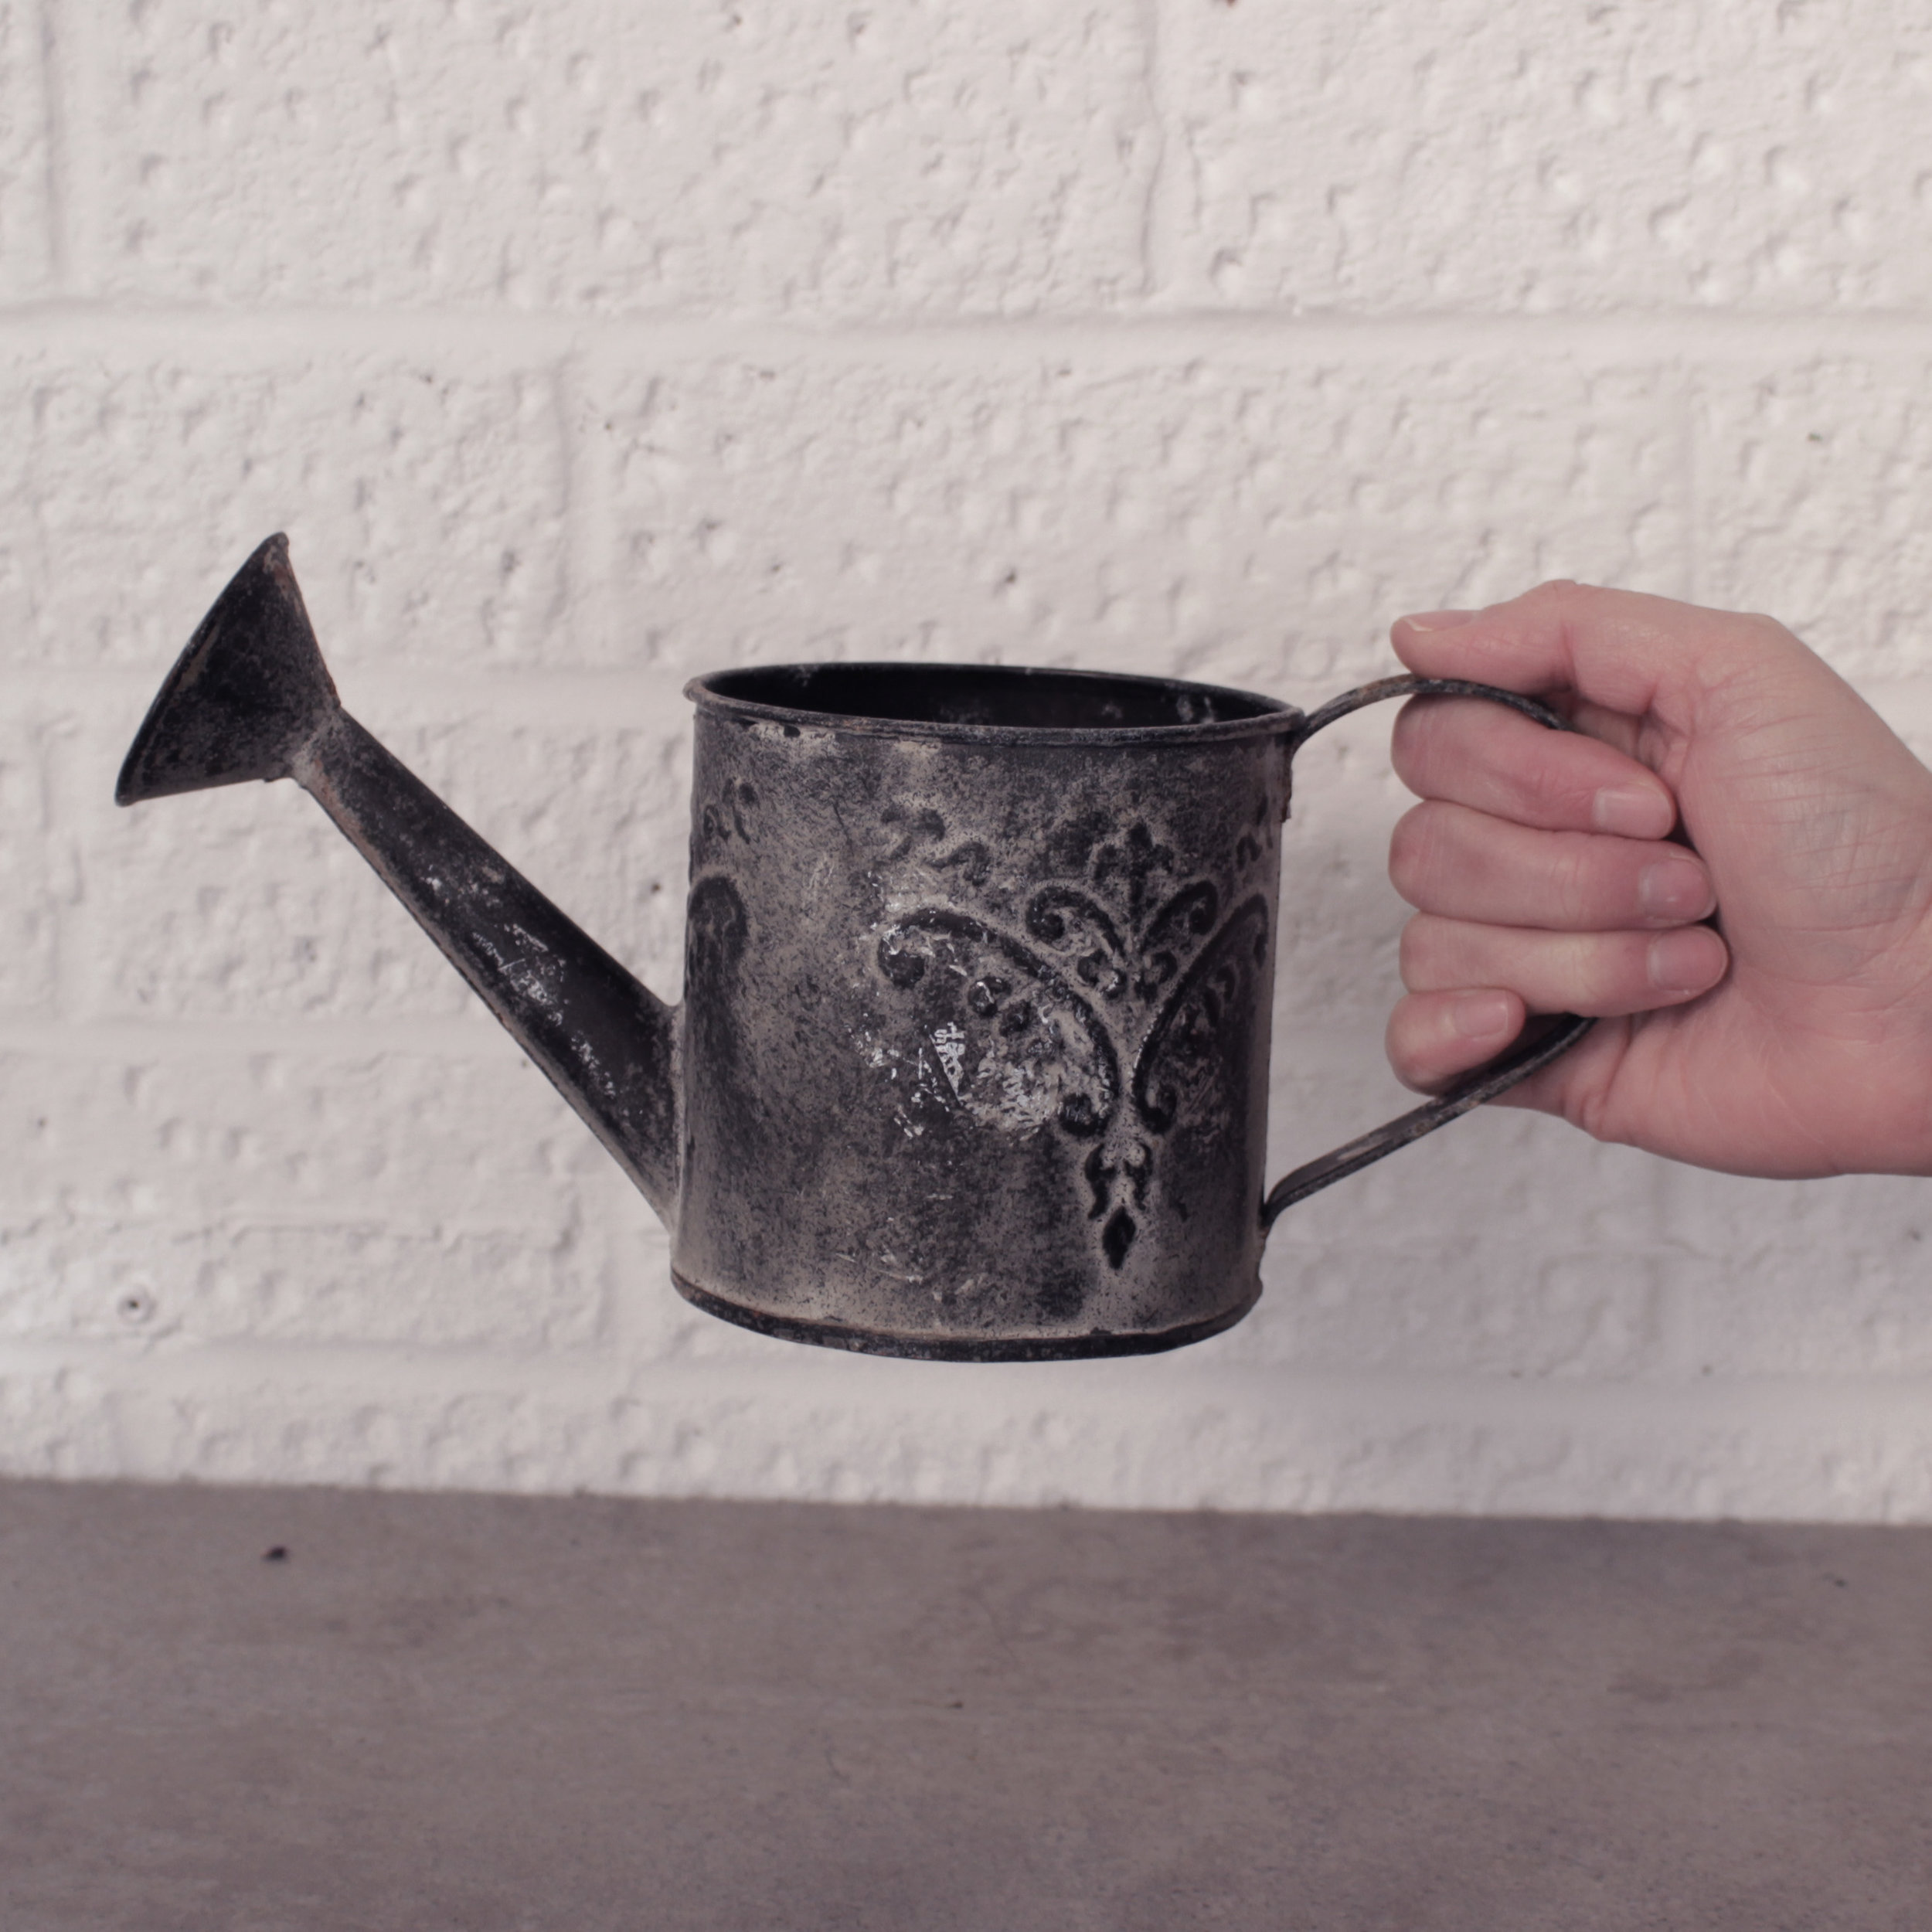 FRENCH ZINC WATERING CAN £2.50